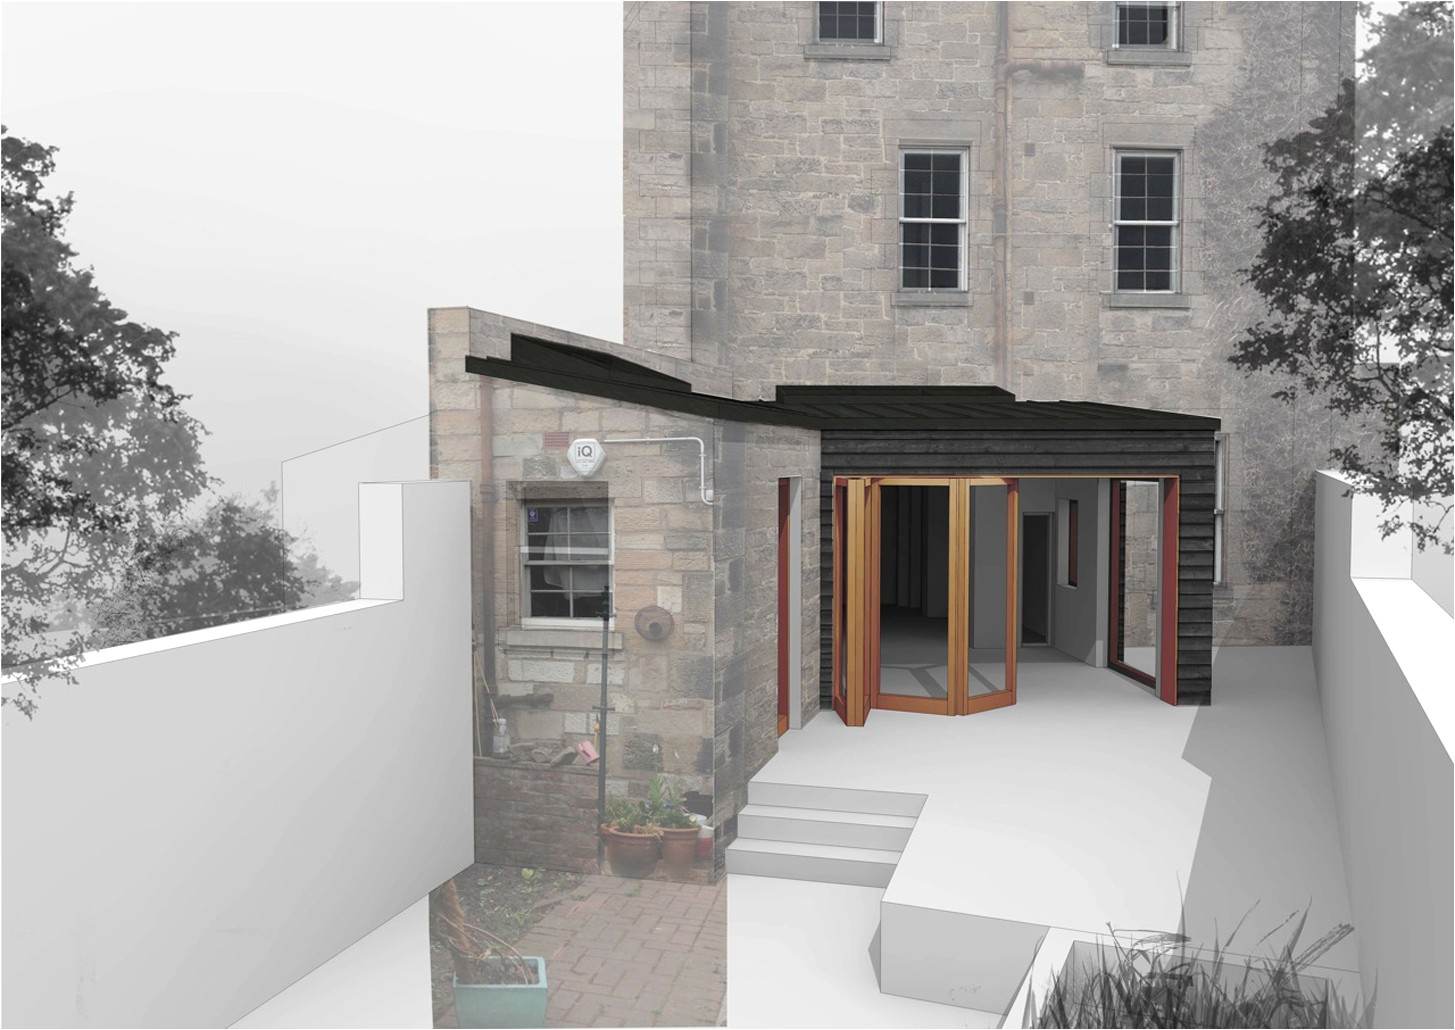 home extension planning permission best of extension built without planning permission has put home into